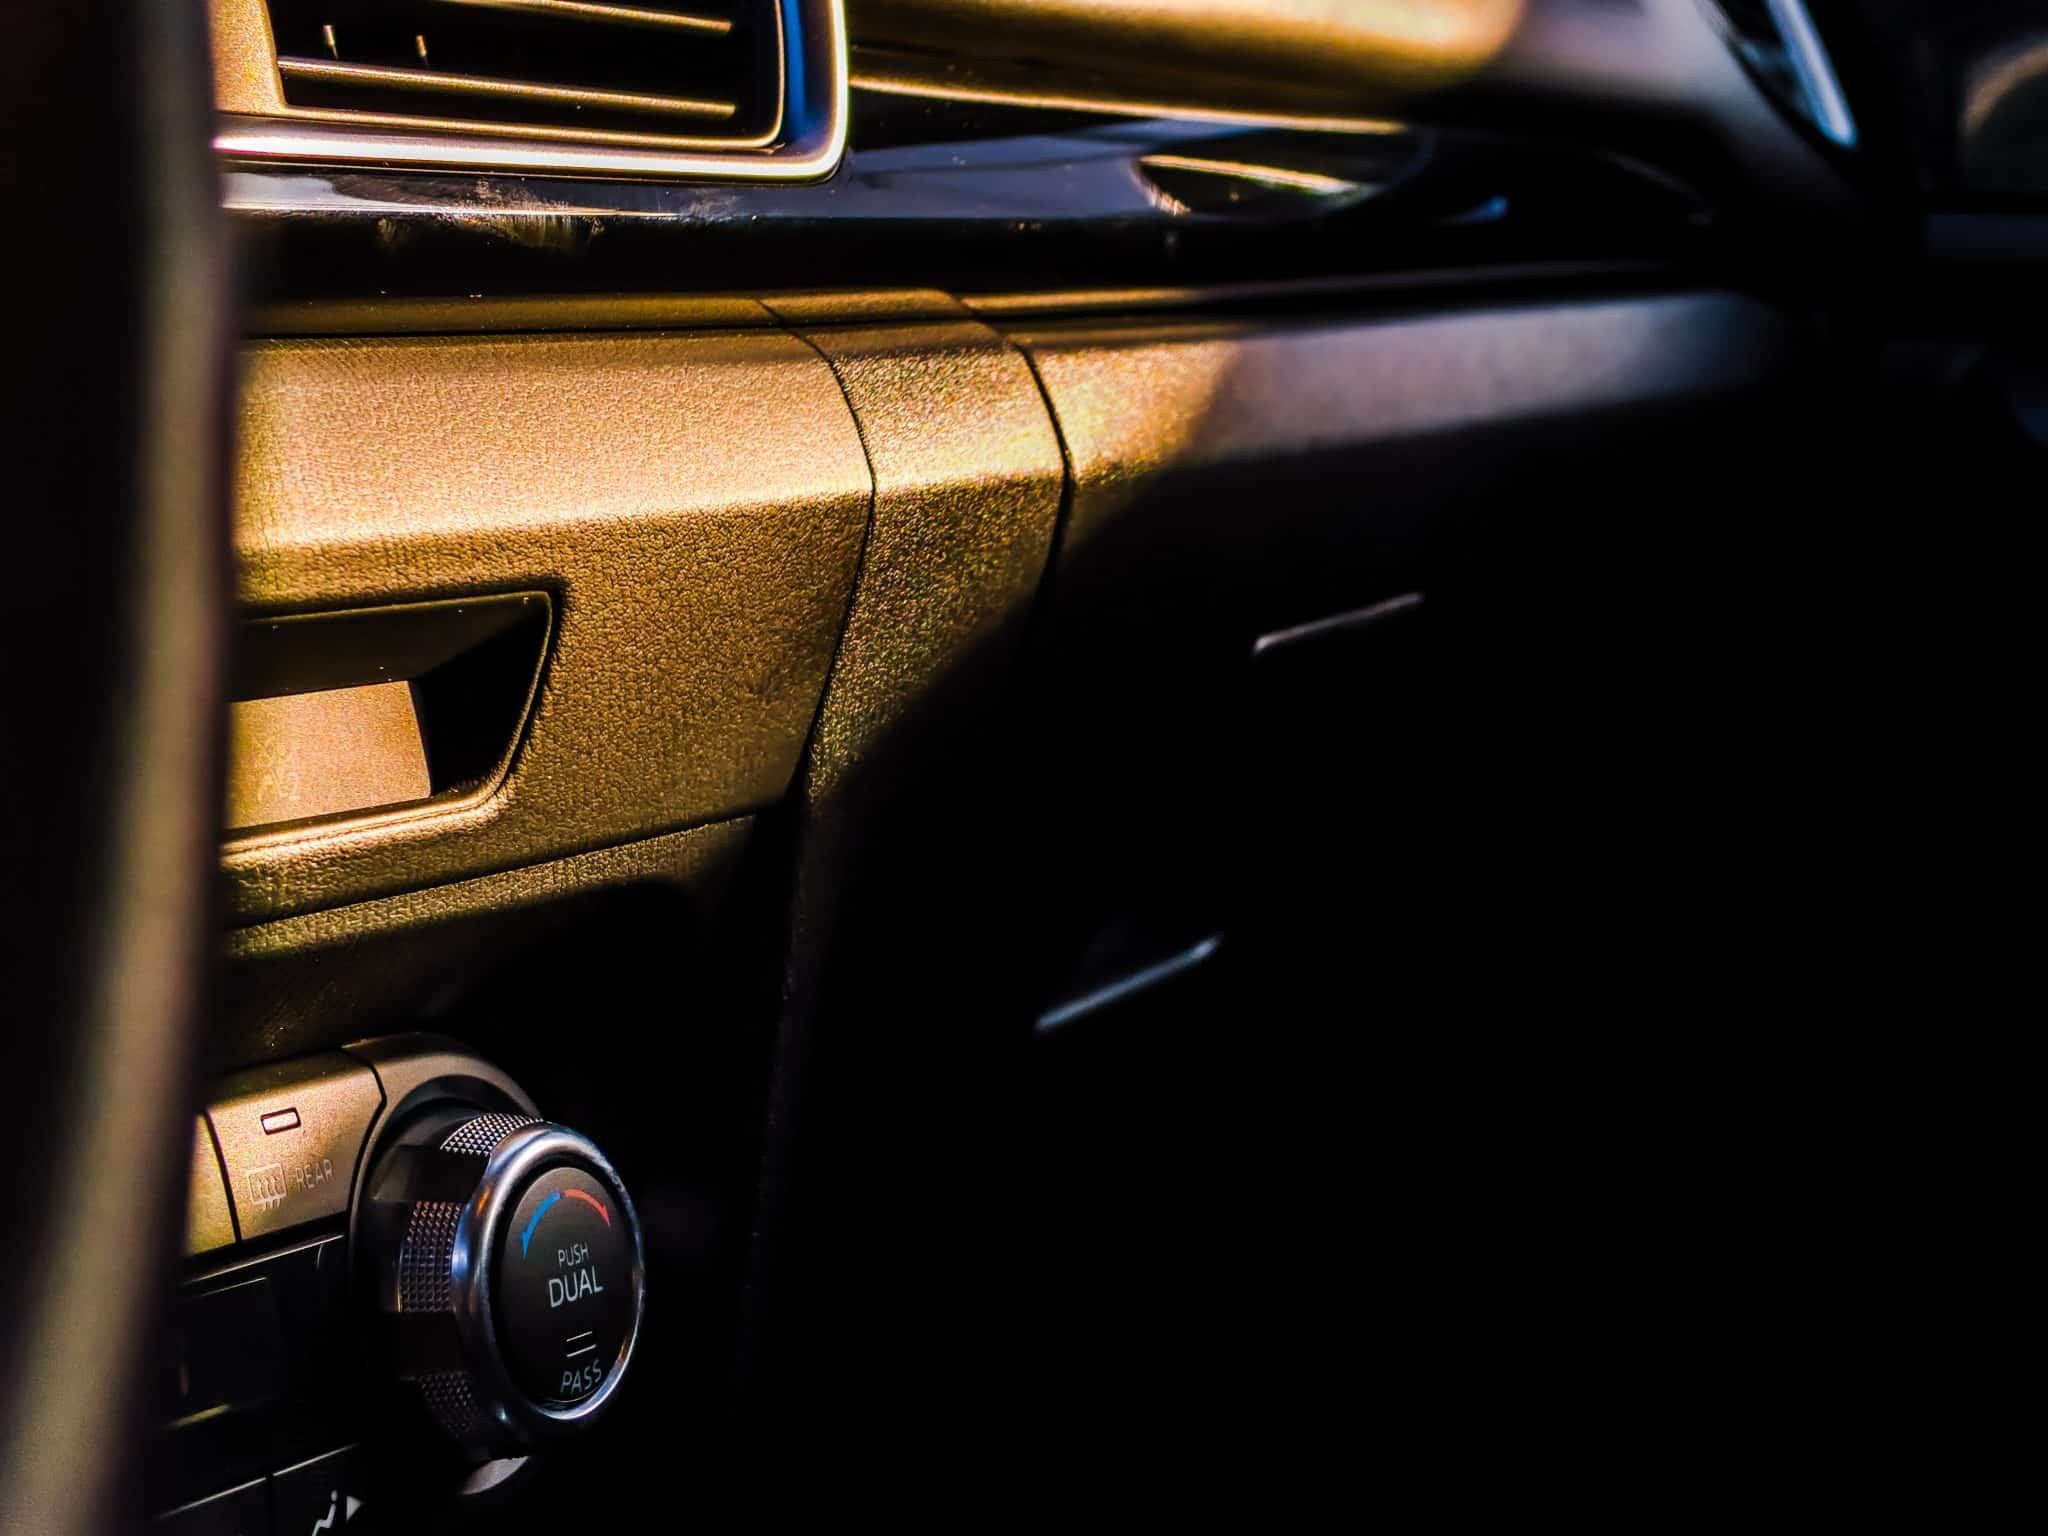 List of the 3 Largest German Automotive Suppliers for Air Conditioning Systems - Including Sales